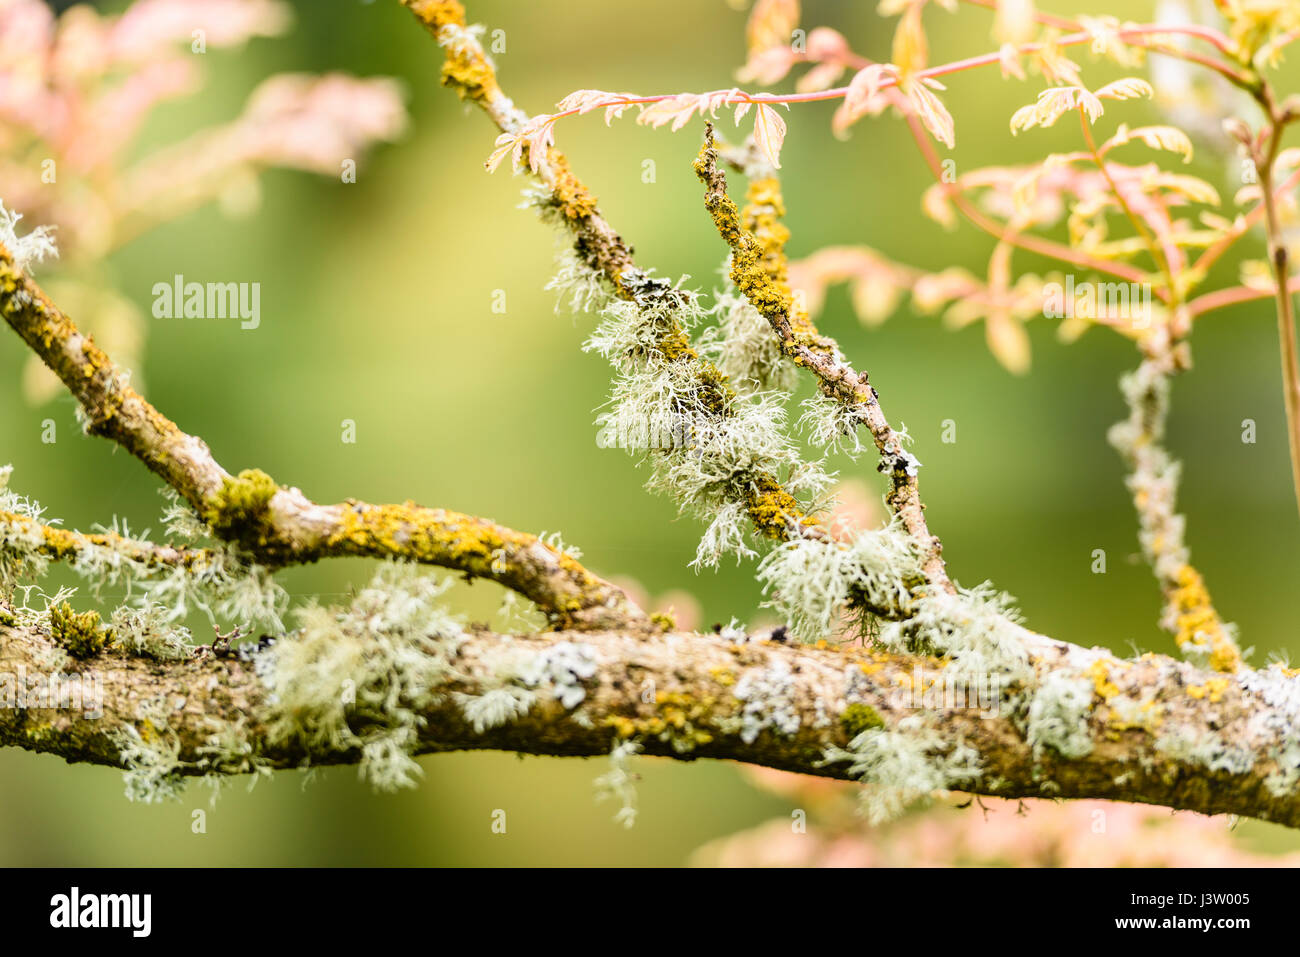 Cartilage lichen growing on the branches of a tree. - Stock Image